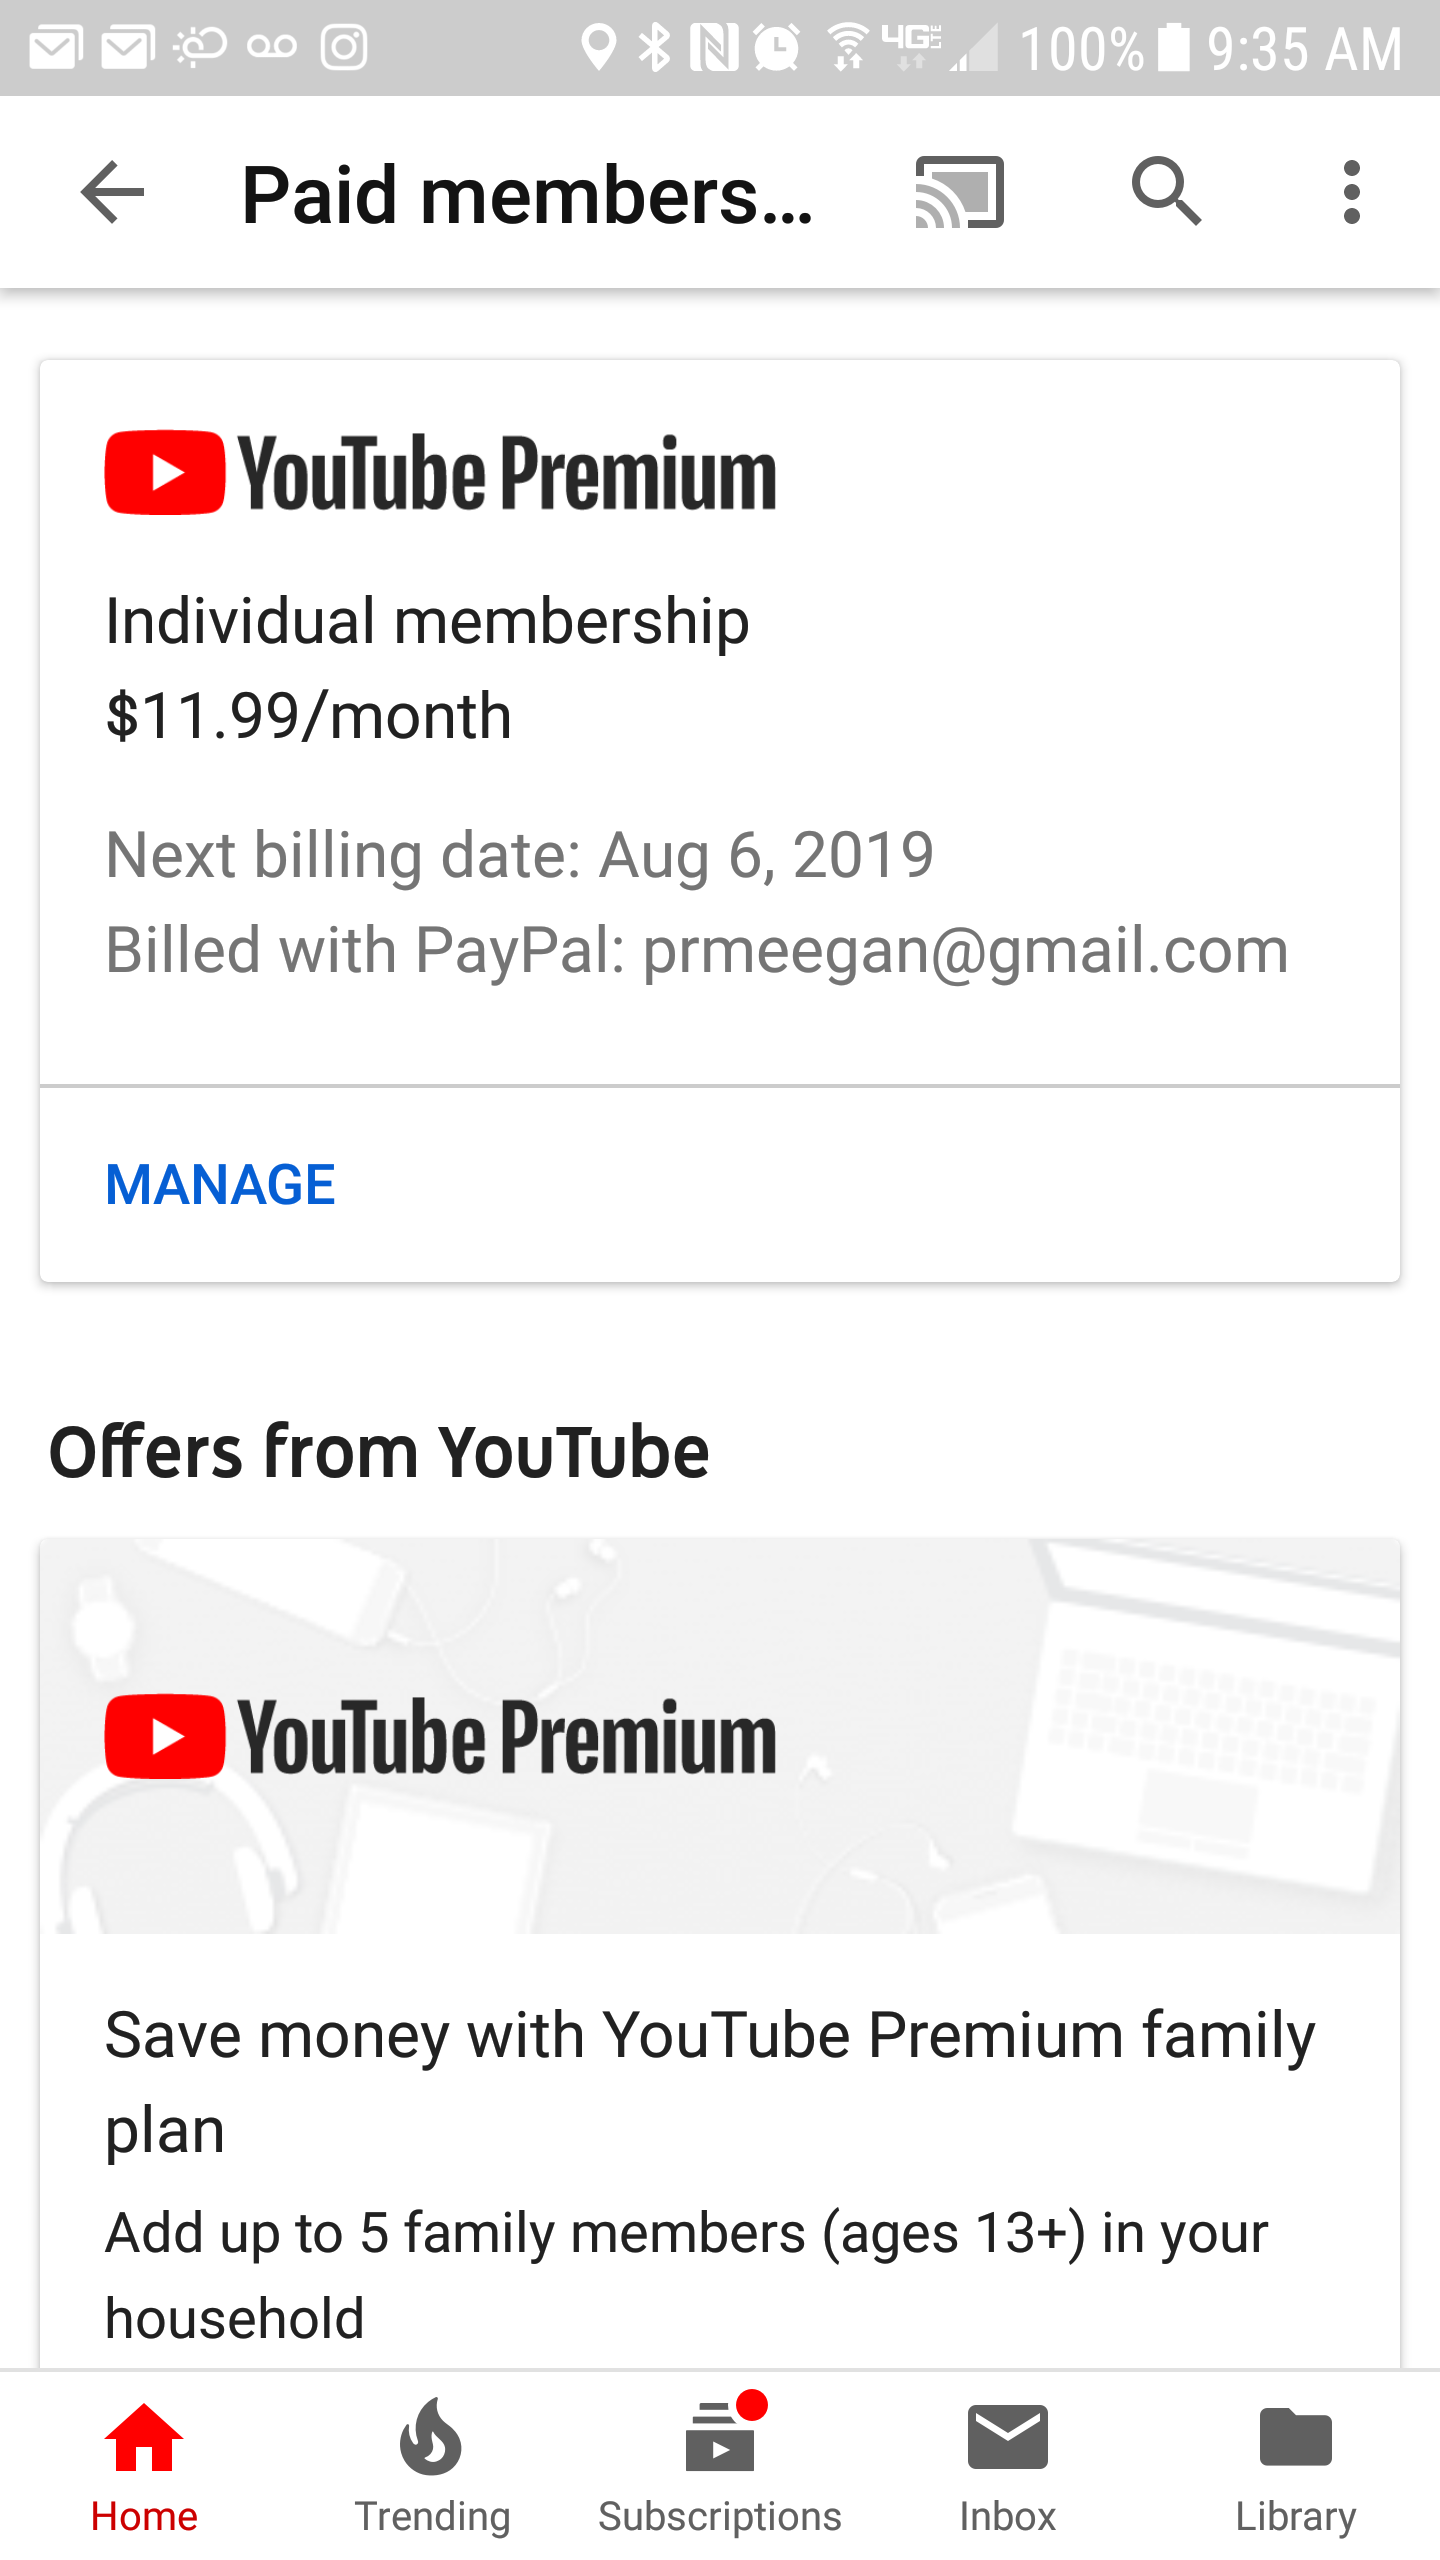 I somehow got charged for the Premium Service, which I didn